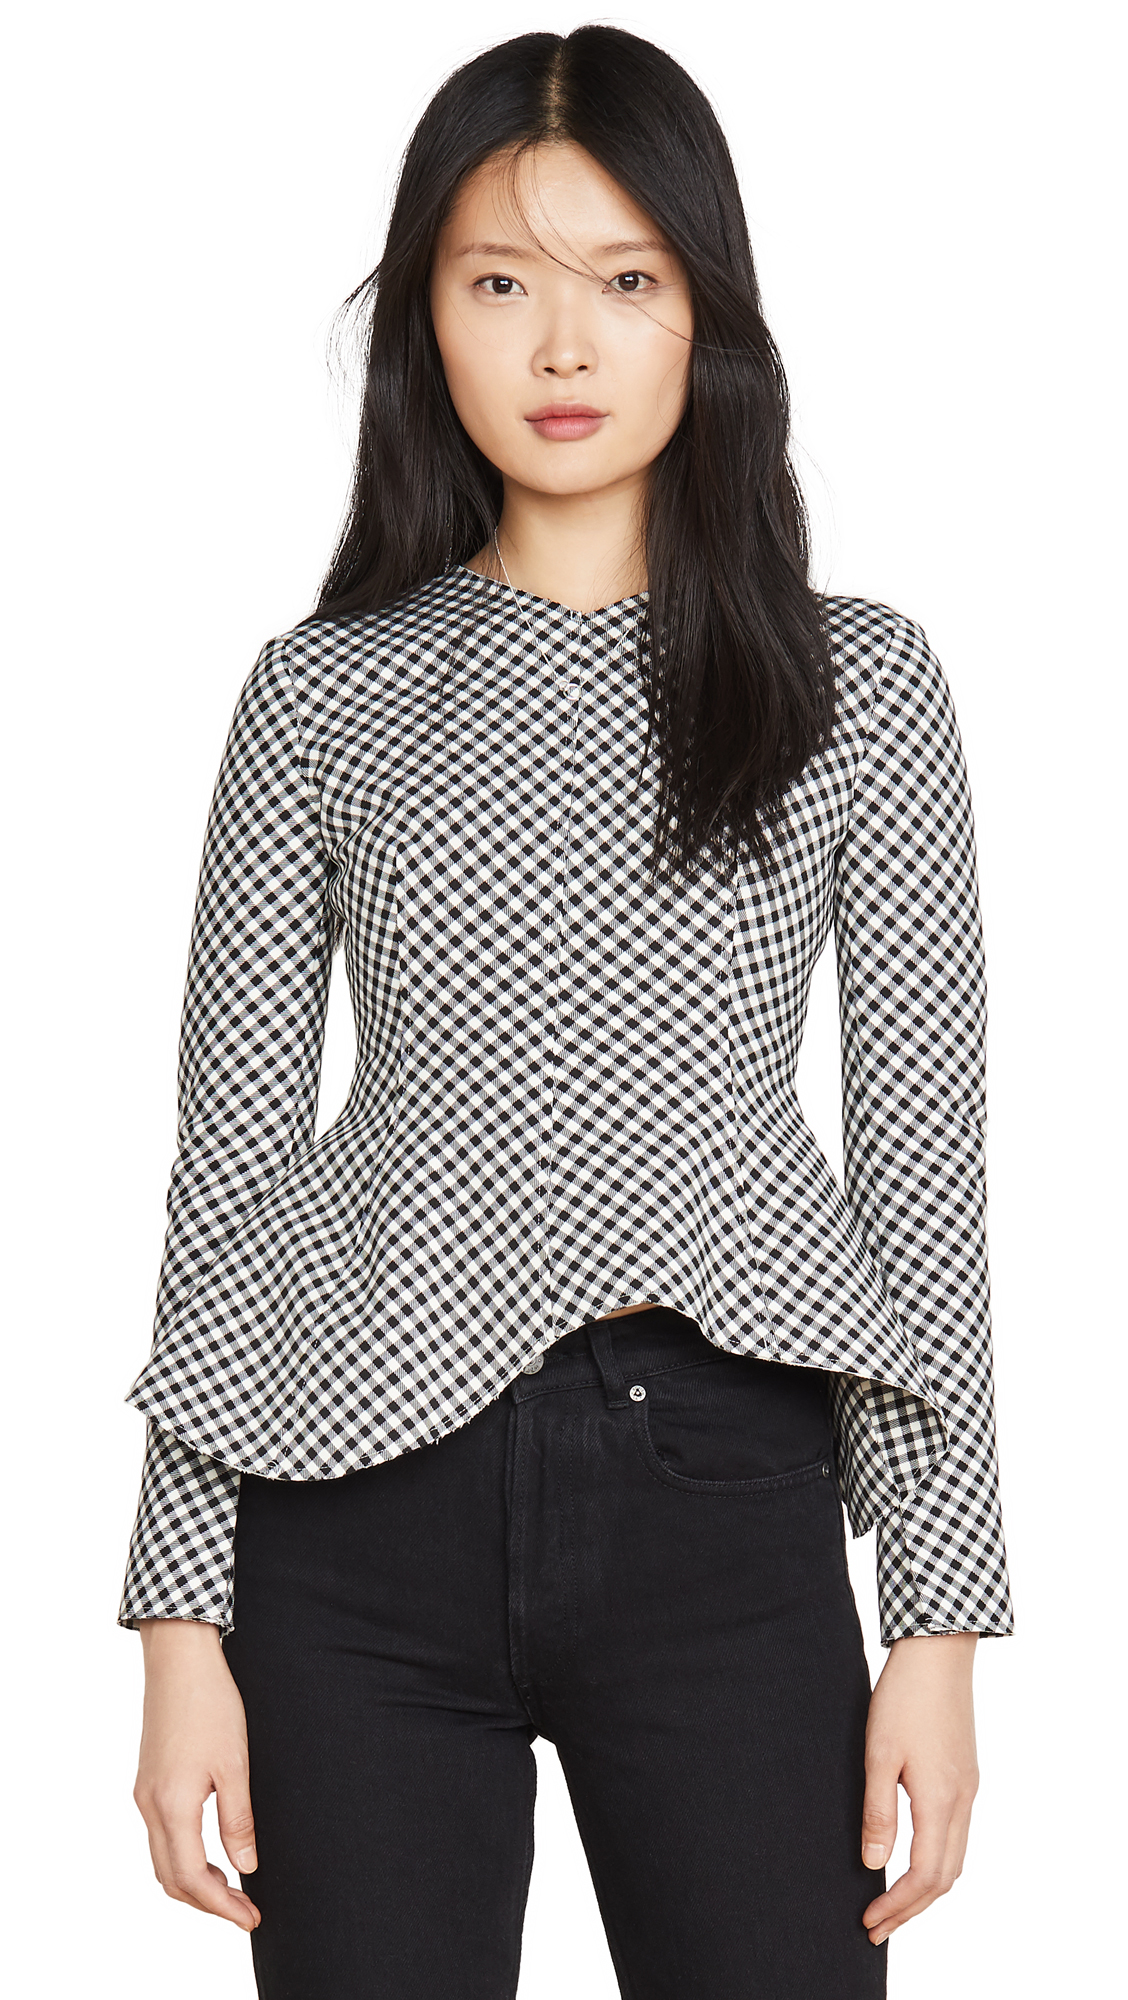 A.W.A.K.E MODE Gingham Peplum Top - 50% Off Sale